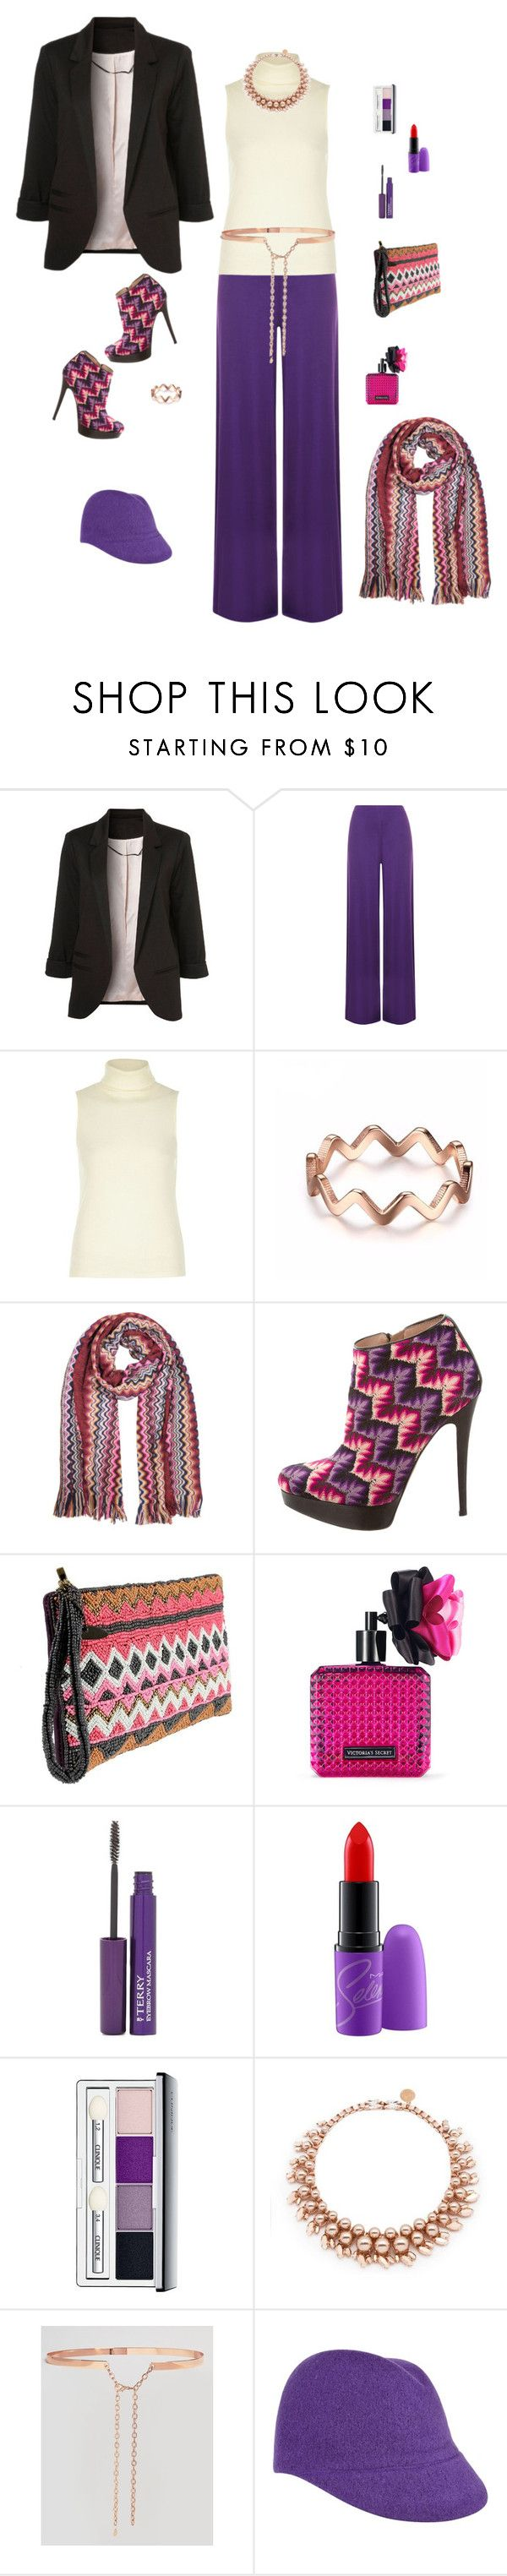 """""""Mmm...mmm"""" by lmello ❤ liked on Polyvore featuring WearAll, River Island, Missoni, Mary Frances Accessories, Victoria's Secret, By Terry, MAC Cosmetics, Clinique, Ellen Conde and Johnny Loves Rosie"""